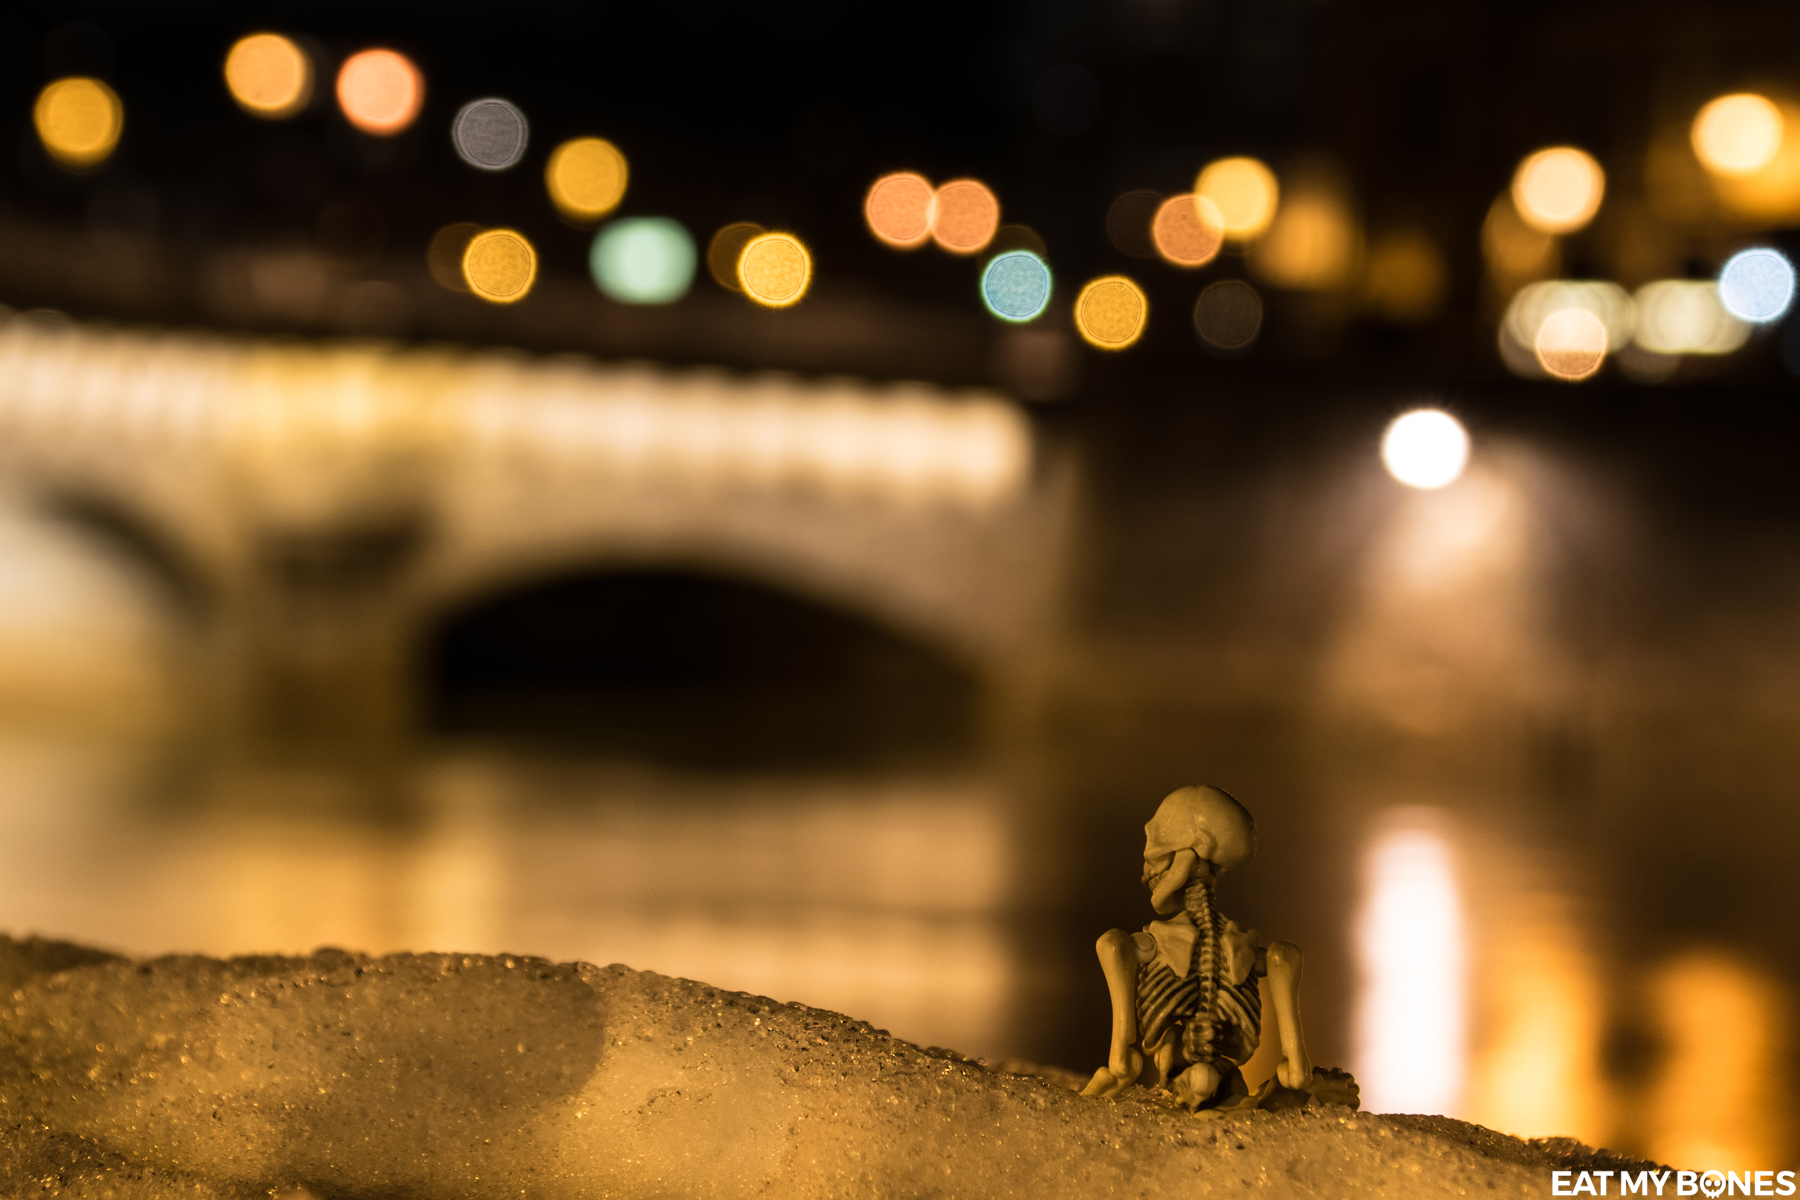 Paris at night - Pose Skeleton - Toy photography - Miniature - Eat my Bones-1